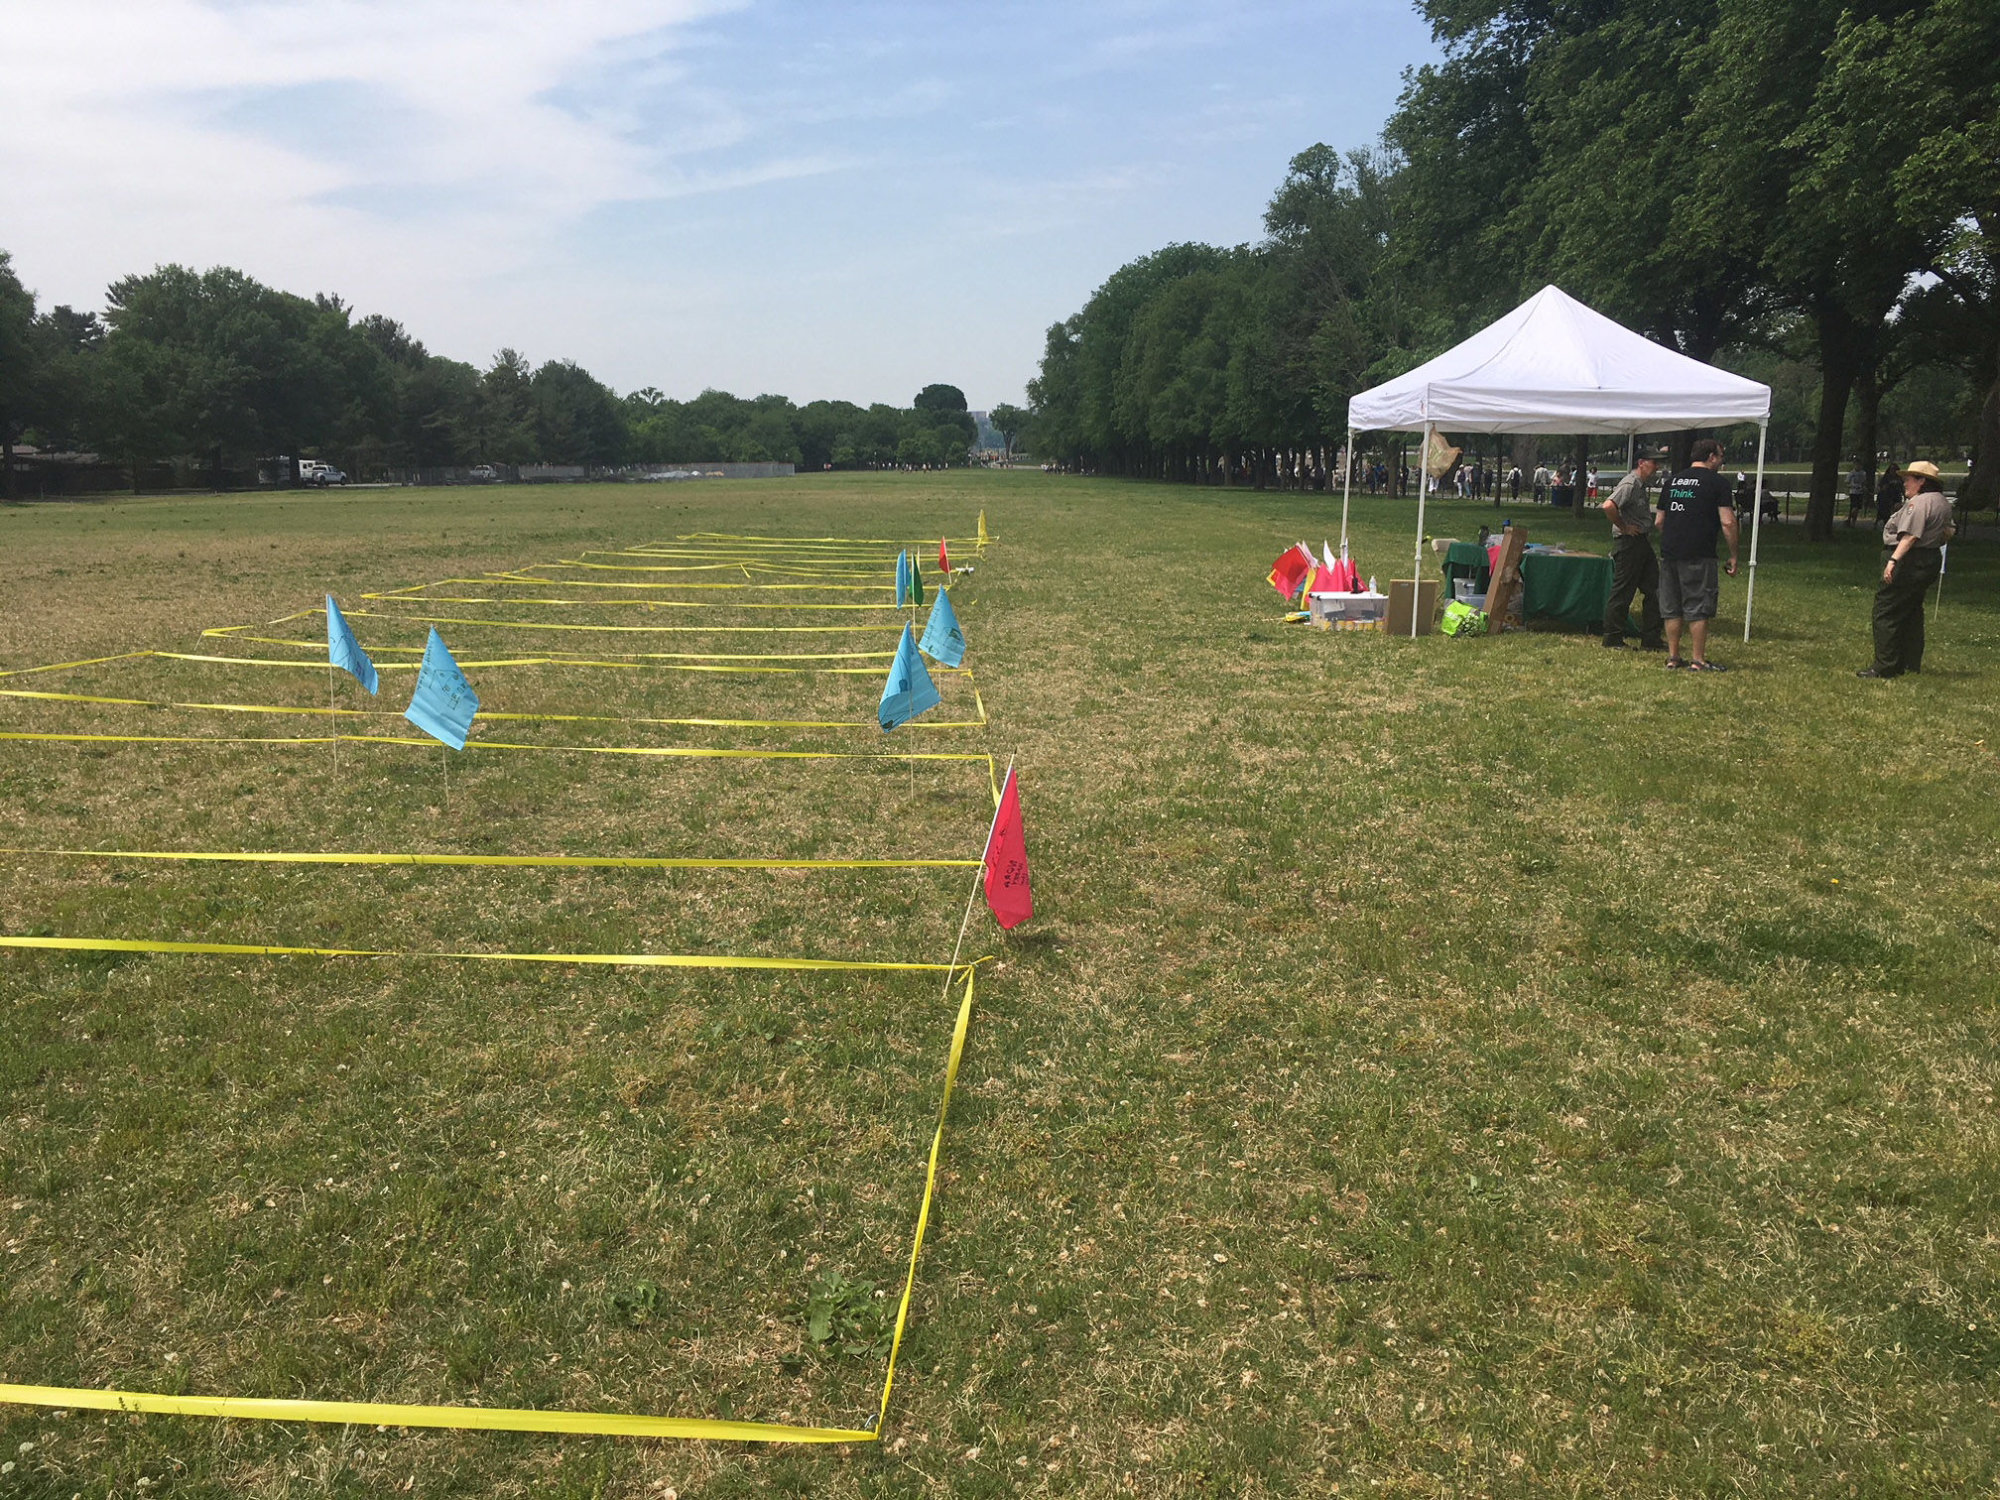 Taped-off rectangles mark the spots where the Resurrection City tents stood as part of a symbolic re-creation by the National Park Service May 12, 2018. (WTOP/Rick Massimo)